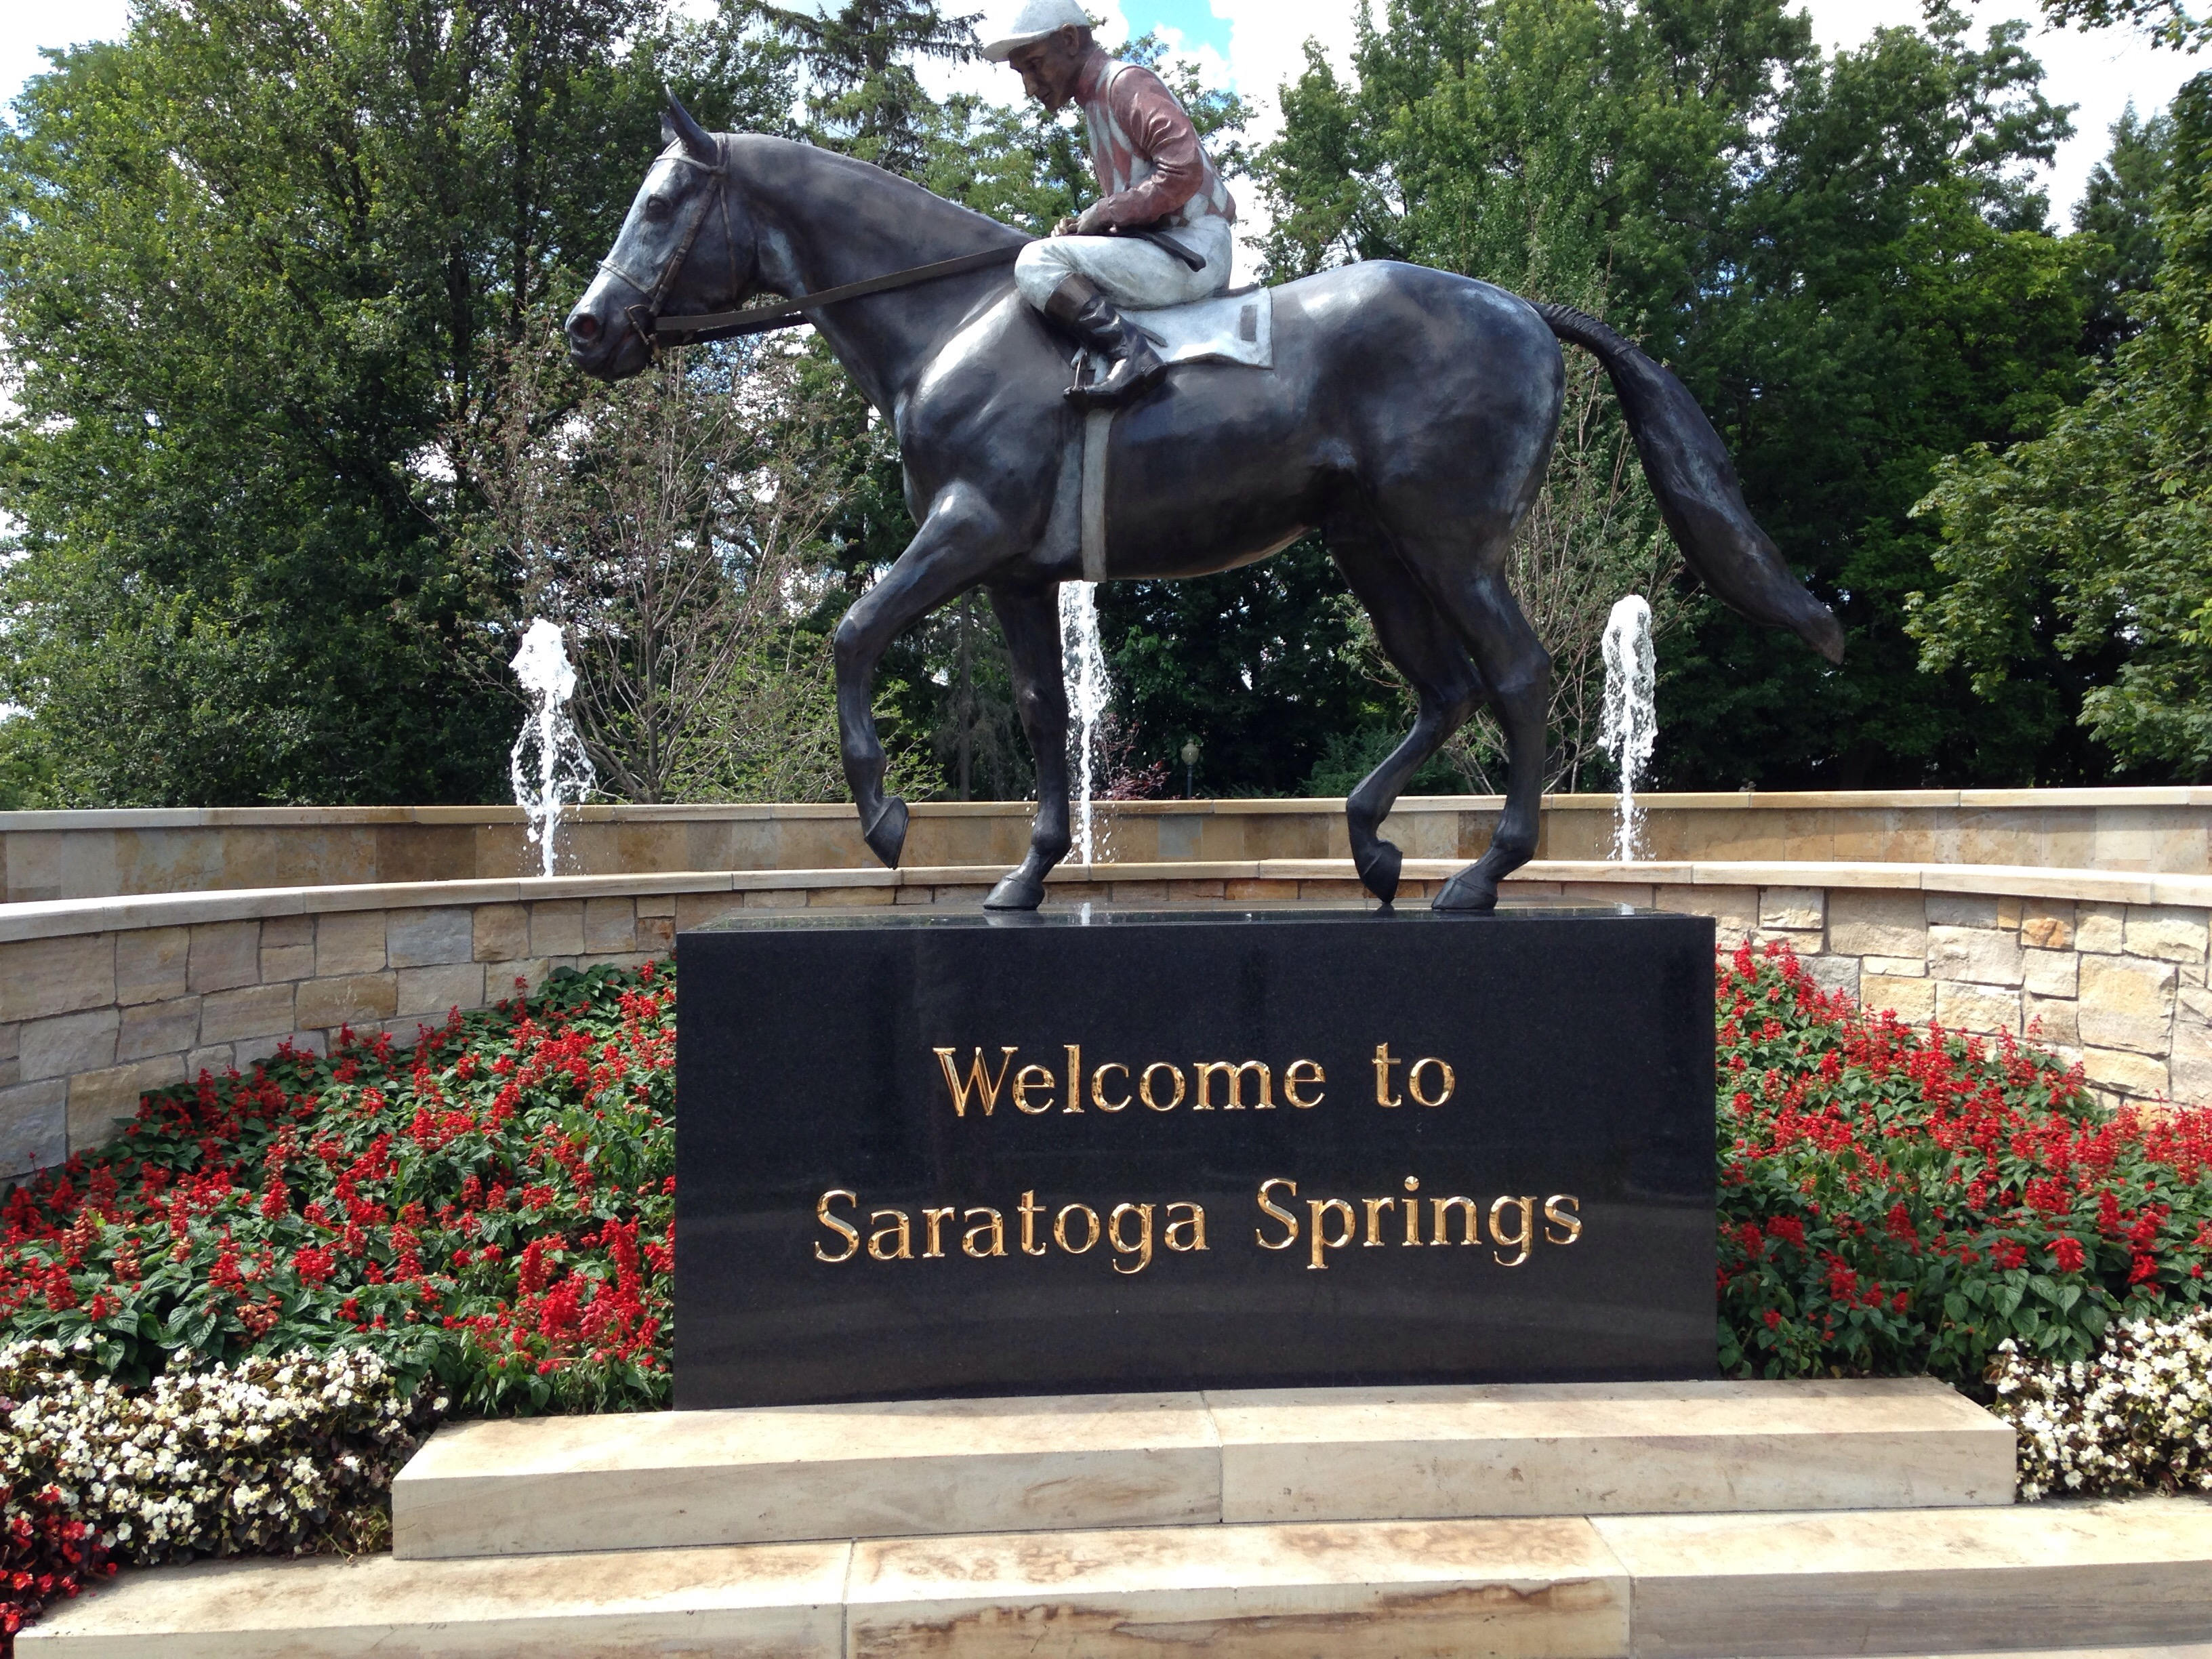 saratoga springs single men over 50 Do you want to meet single men in saratoga springs in new york for a relationship or even marriage then join our dating site to chat to local men seeking women today.